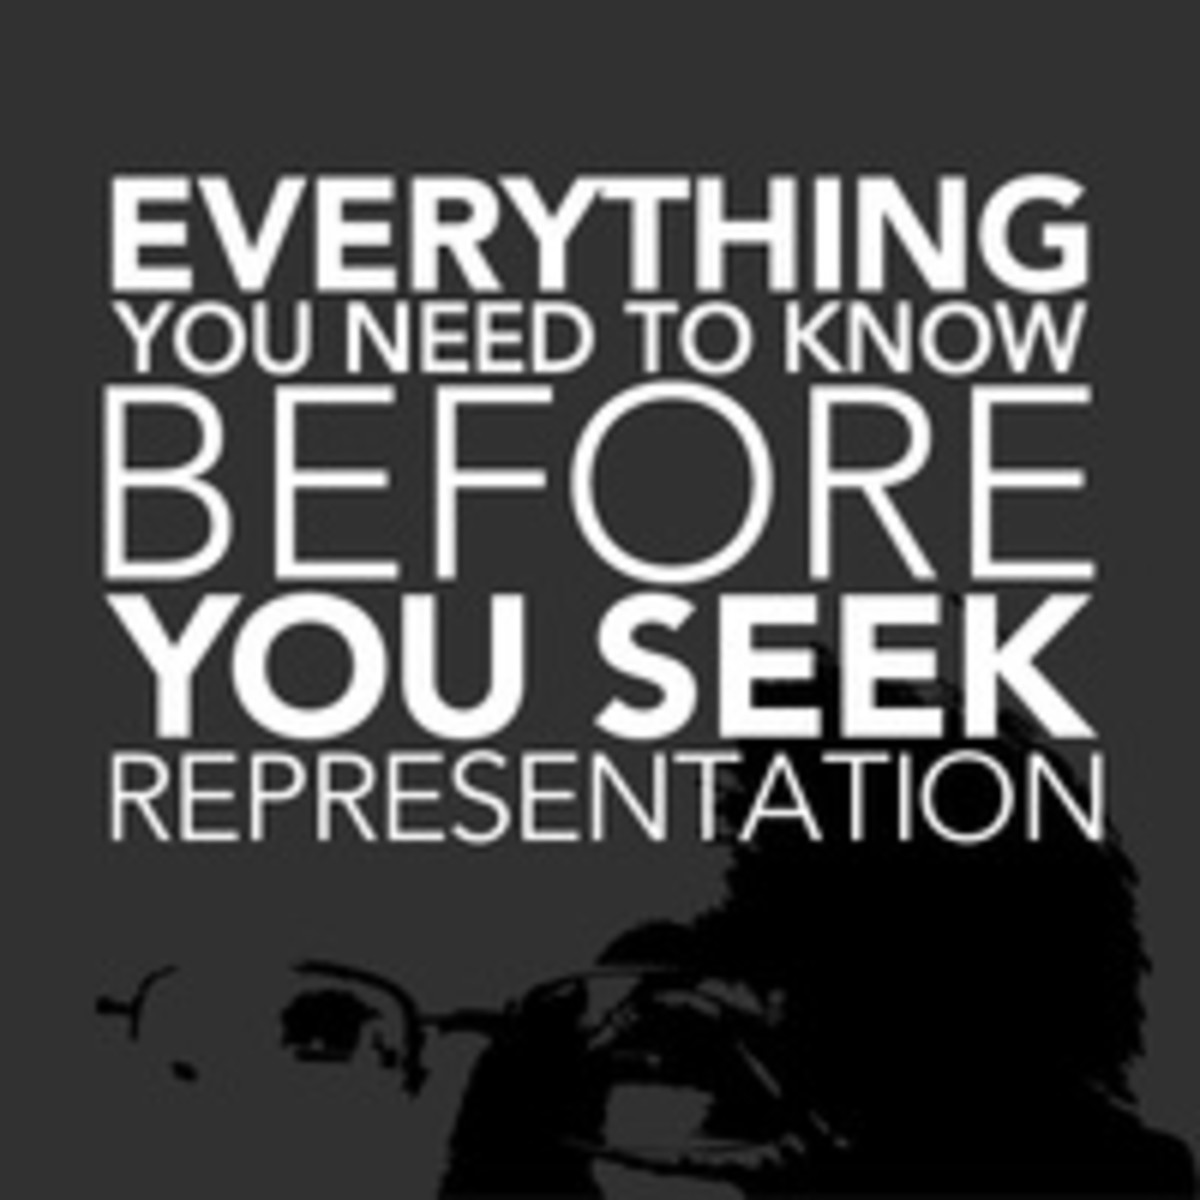 Everything You Need to Know Before You Seek Representation